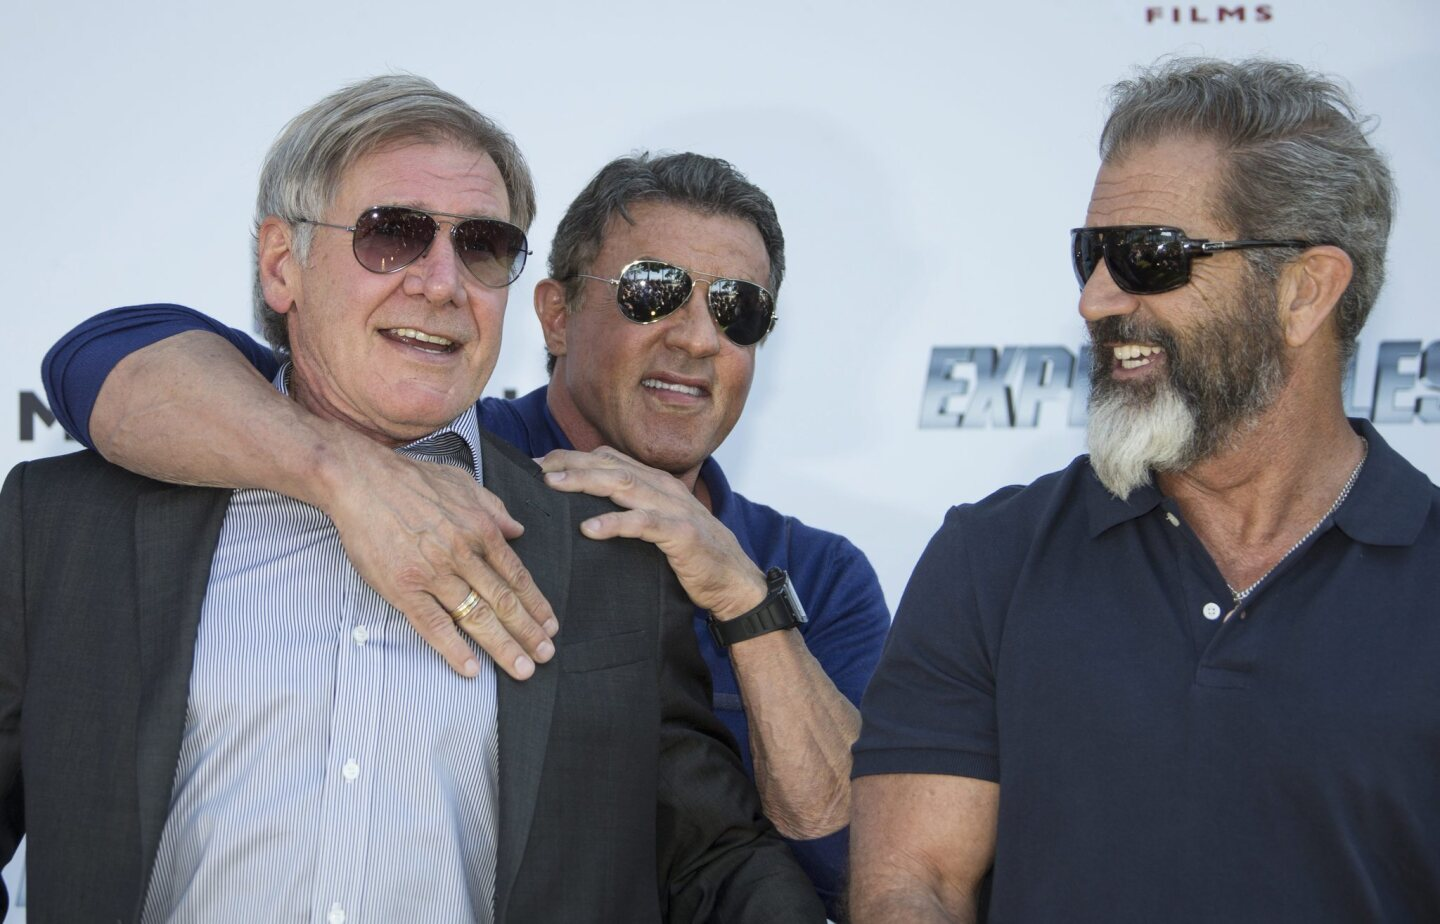 """Neither the chokehold by Sylvester Stallone nor the sight of Mel Gibson's beard could faze Harrison Ford, but while filming the latest """"Star Wars"""" installment, the 71-year-old actor broke his left leg -- putting his participation in the anticipated film on hold."""